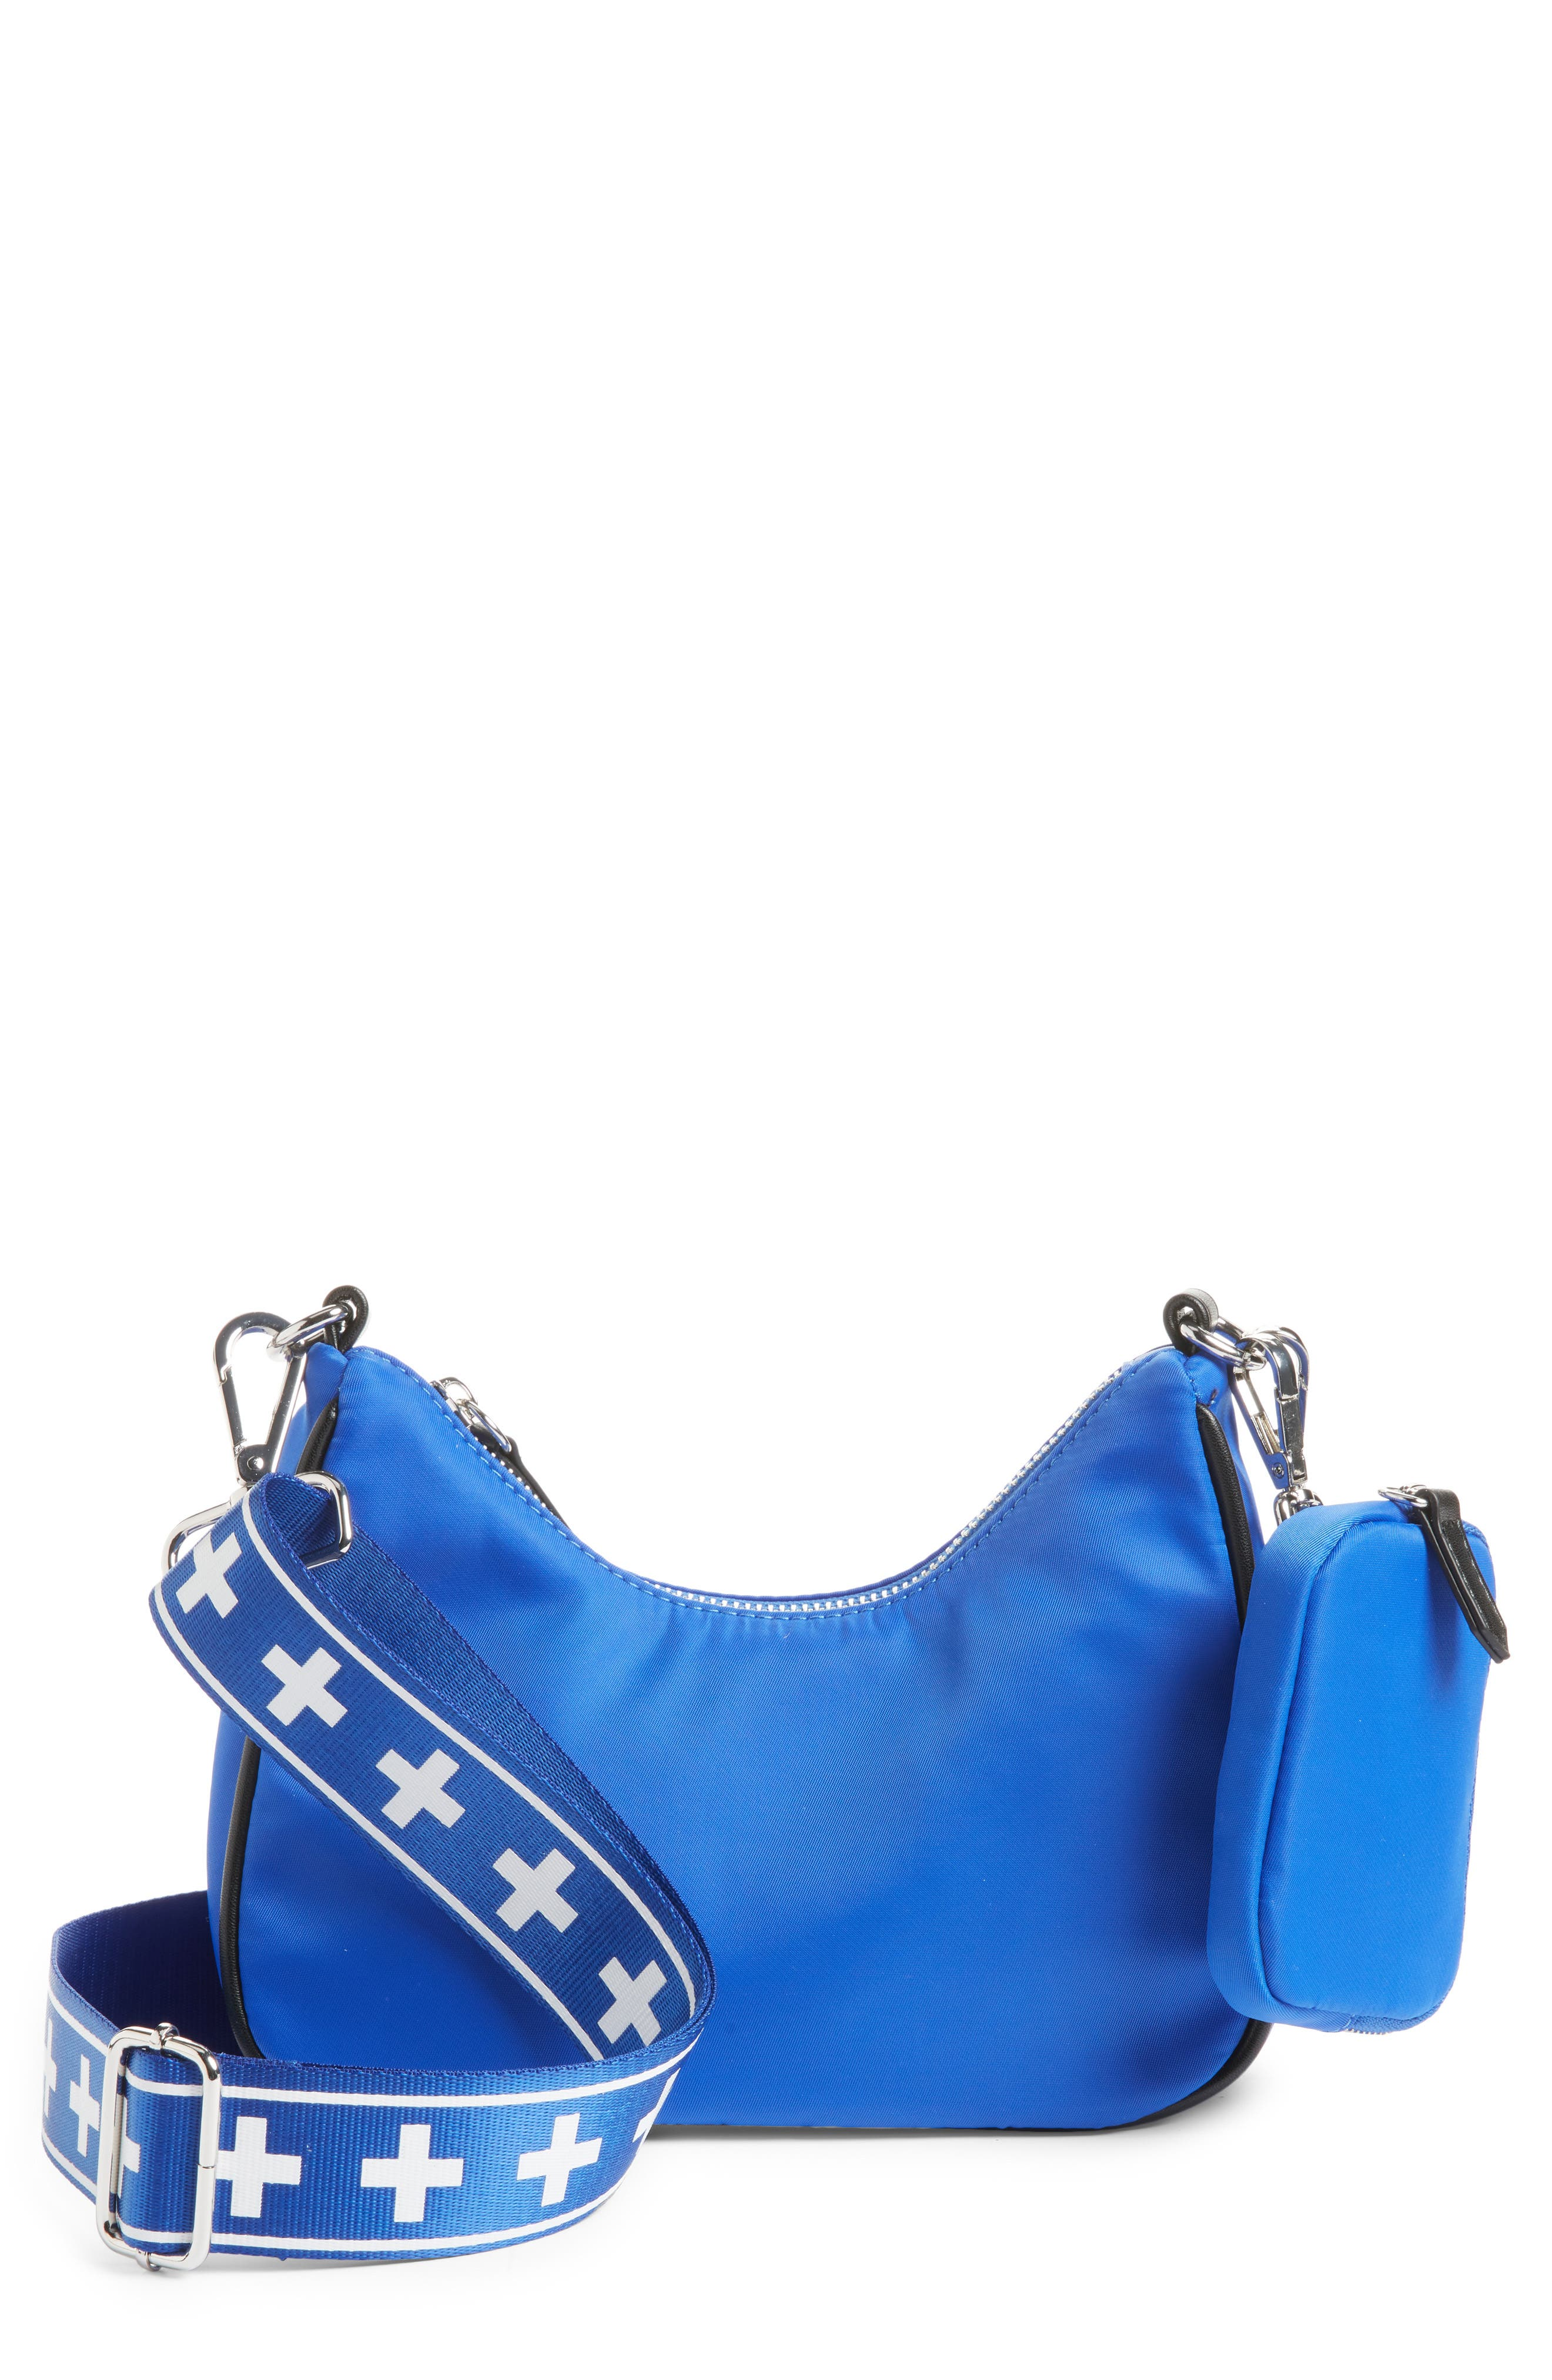 Bp. + Wildfang Nylon Crossbody Bag With Accessory Pouch